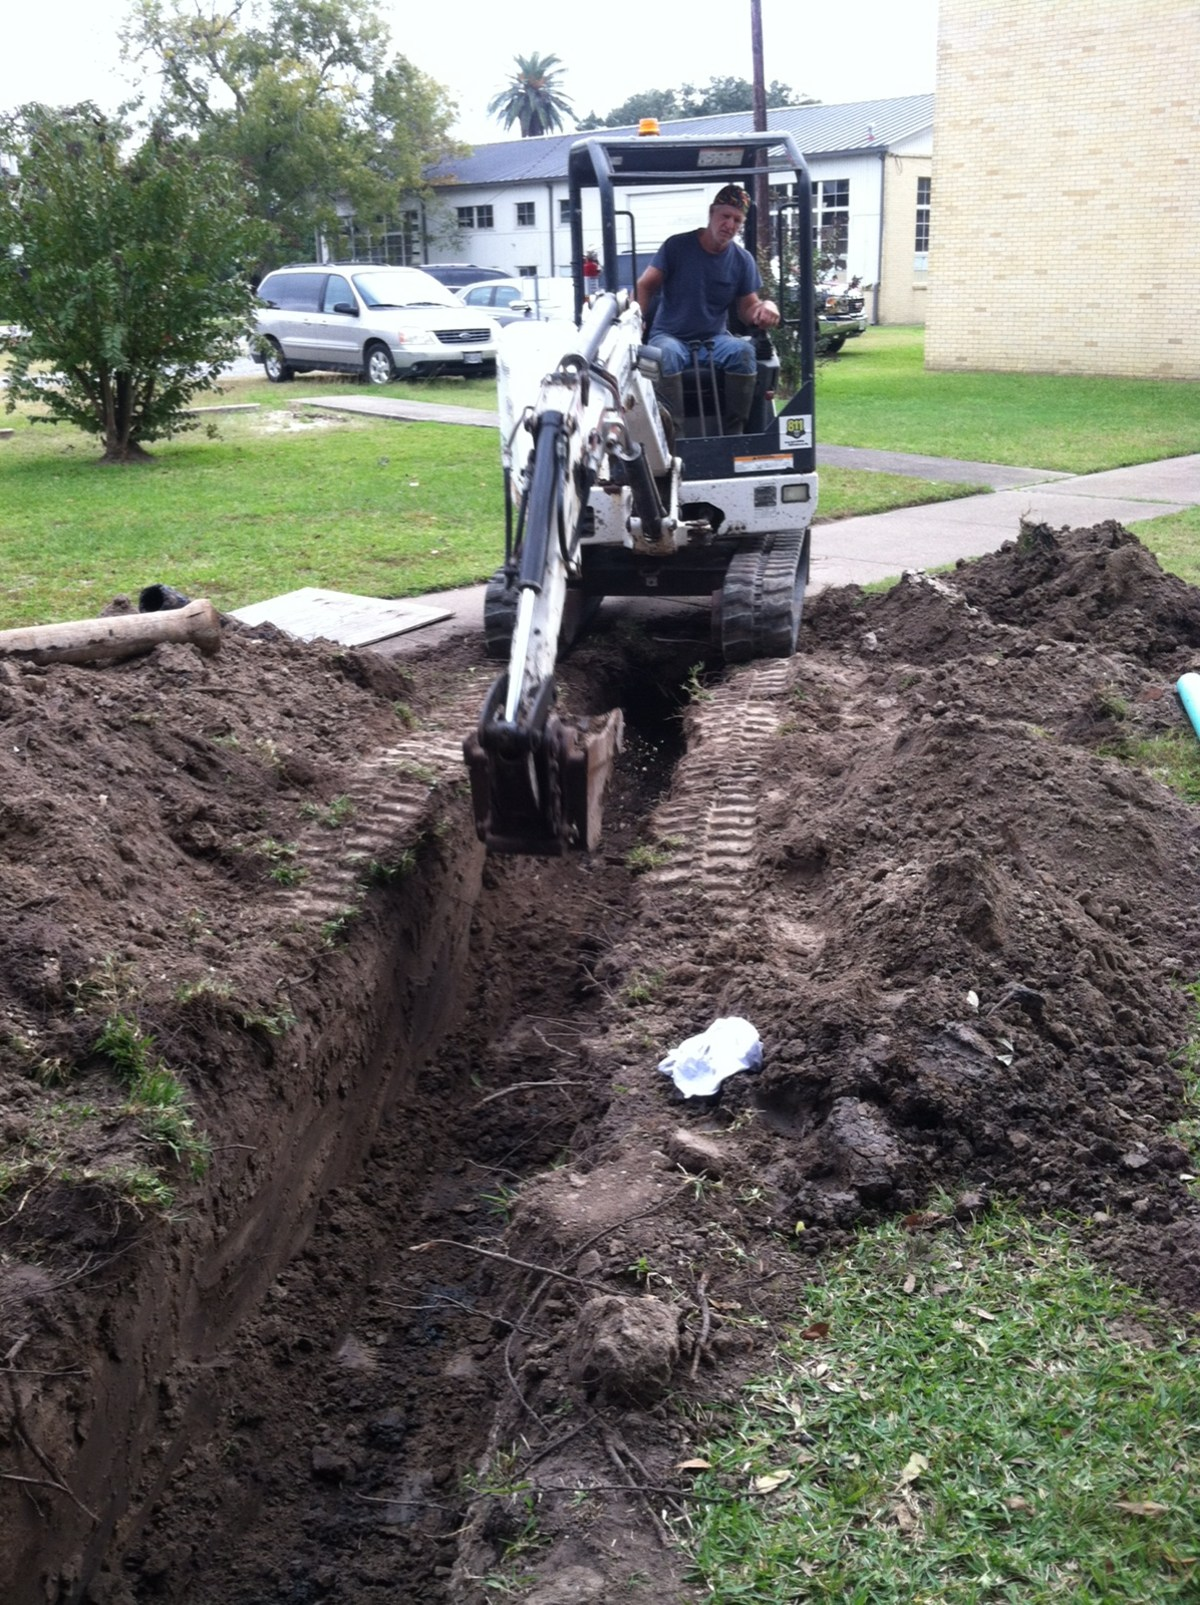 Maintenance worker digging a hole.